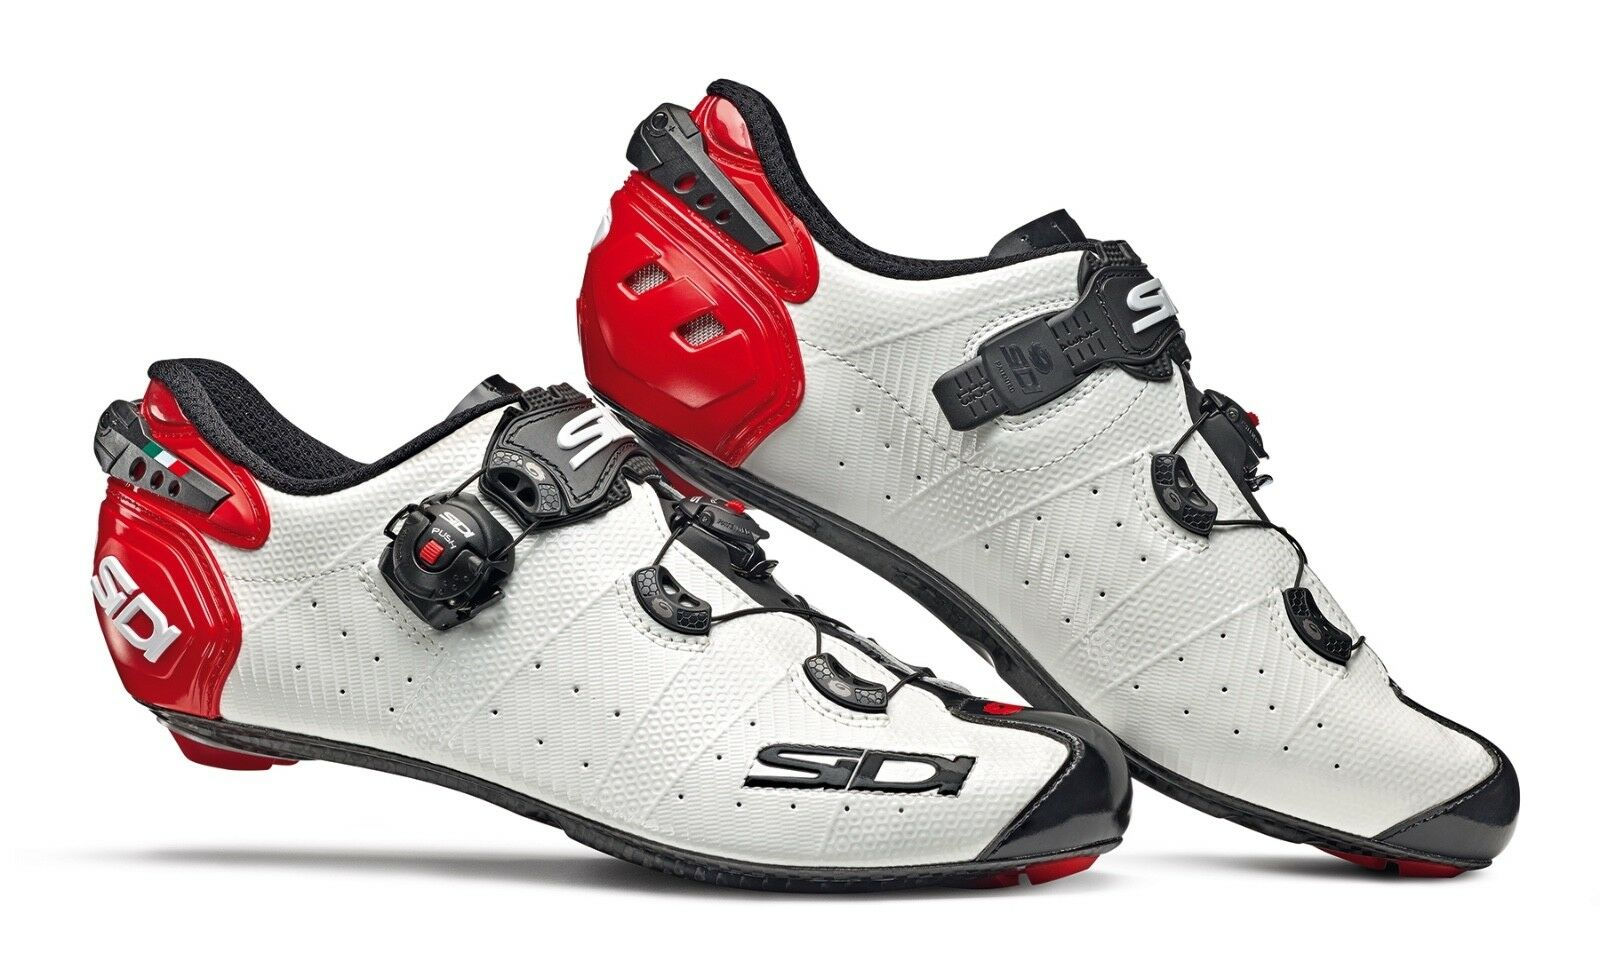 shoes SIDI WIRE  2 CARBON BIANCO black red Size 43.5  professional integrated online shopping mall